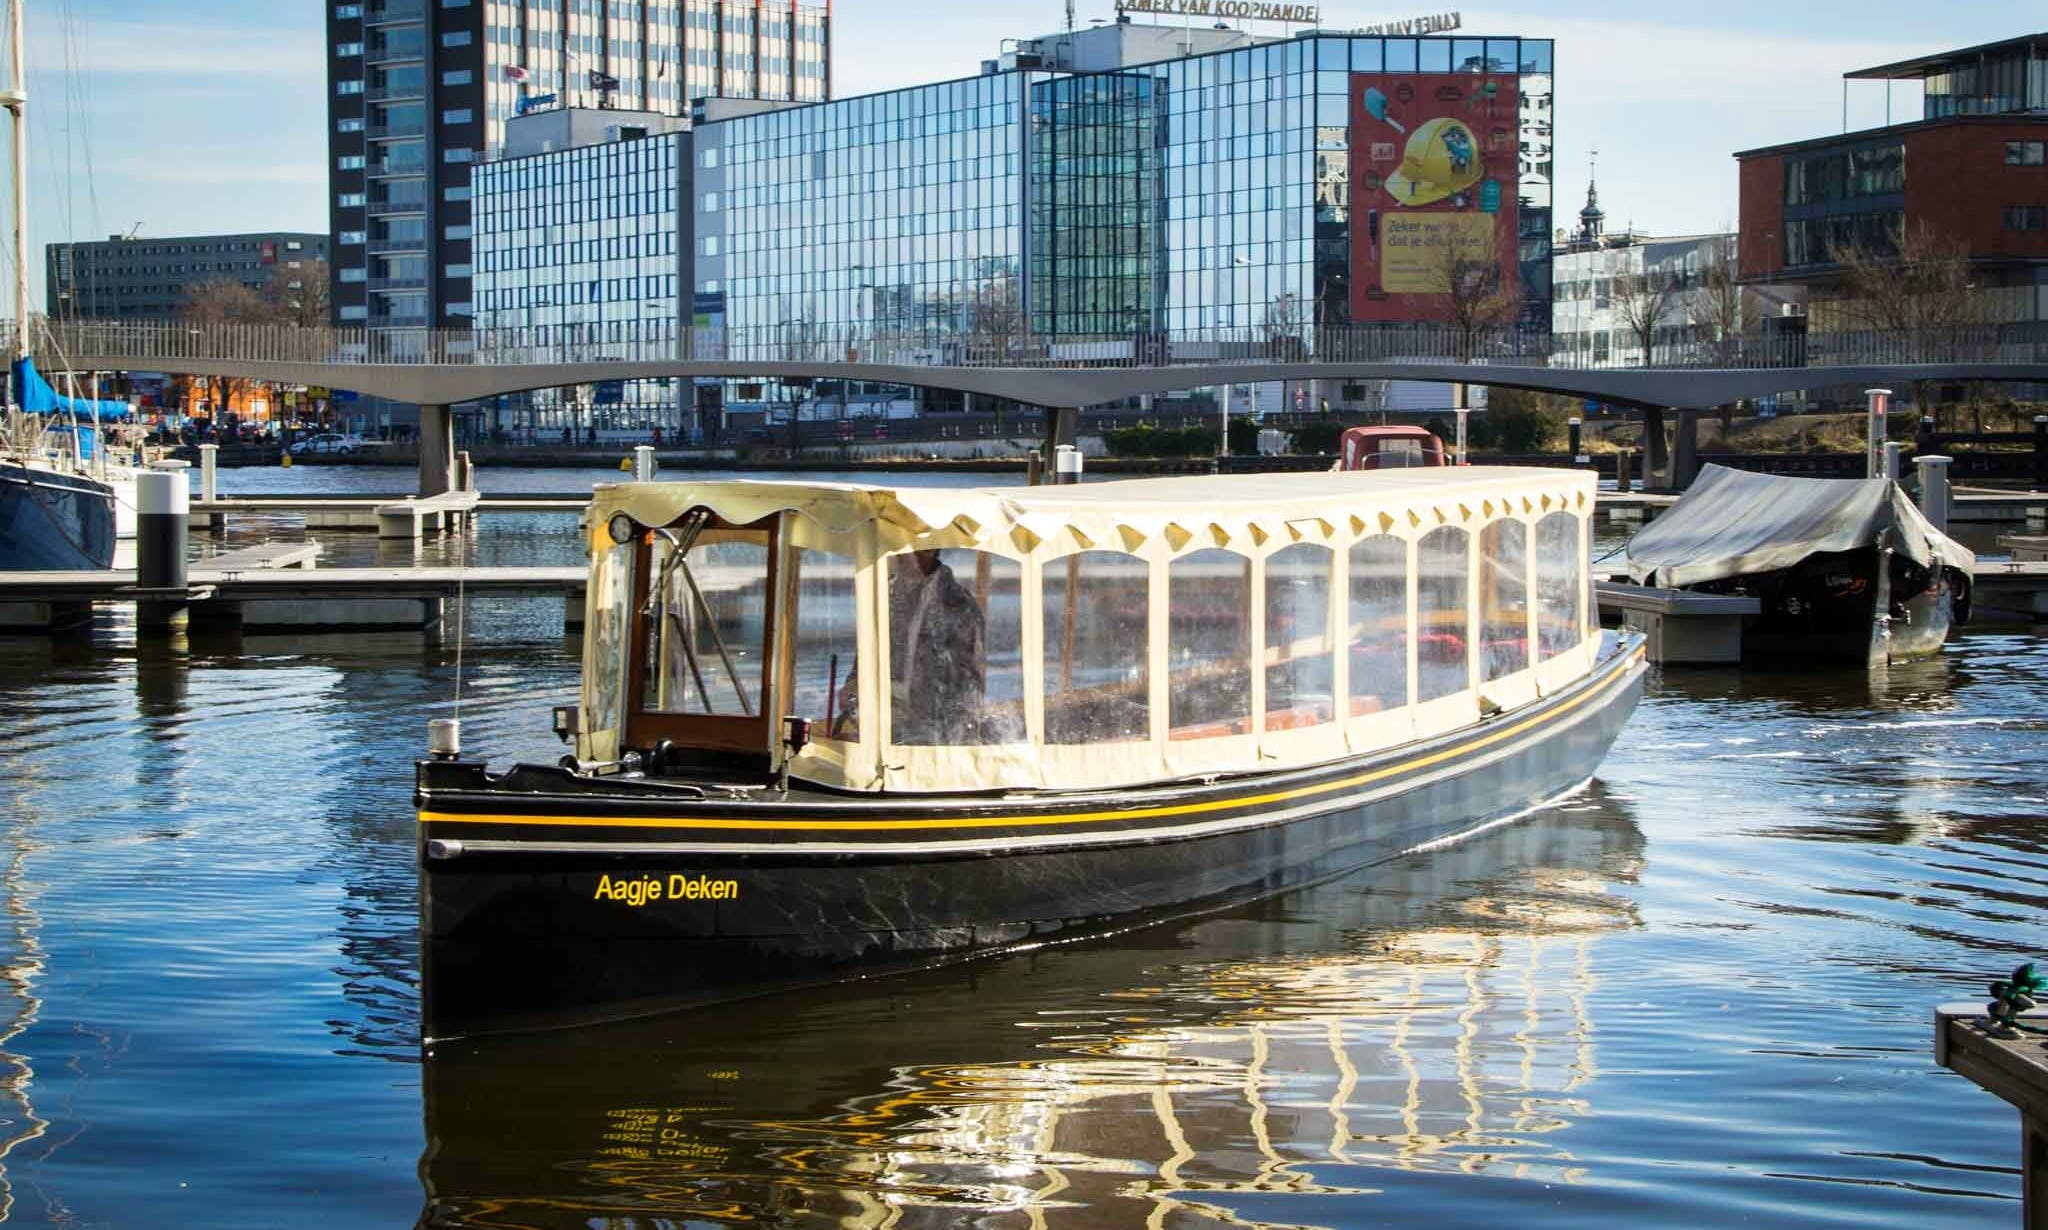 Party Aboard 25 People Electric Saloon Boat in Amsterdam